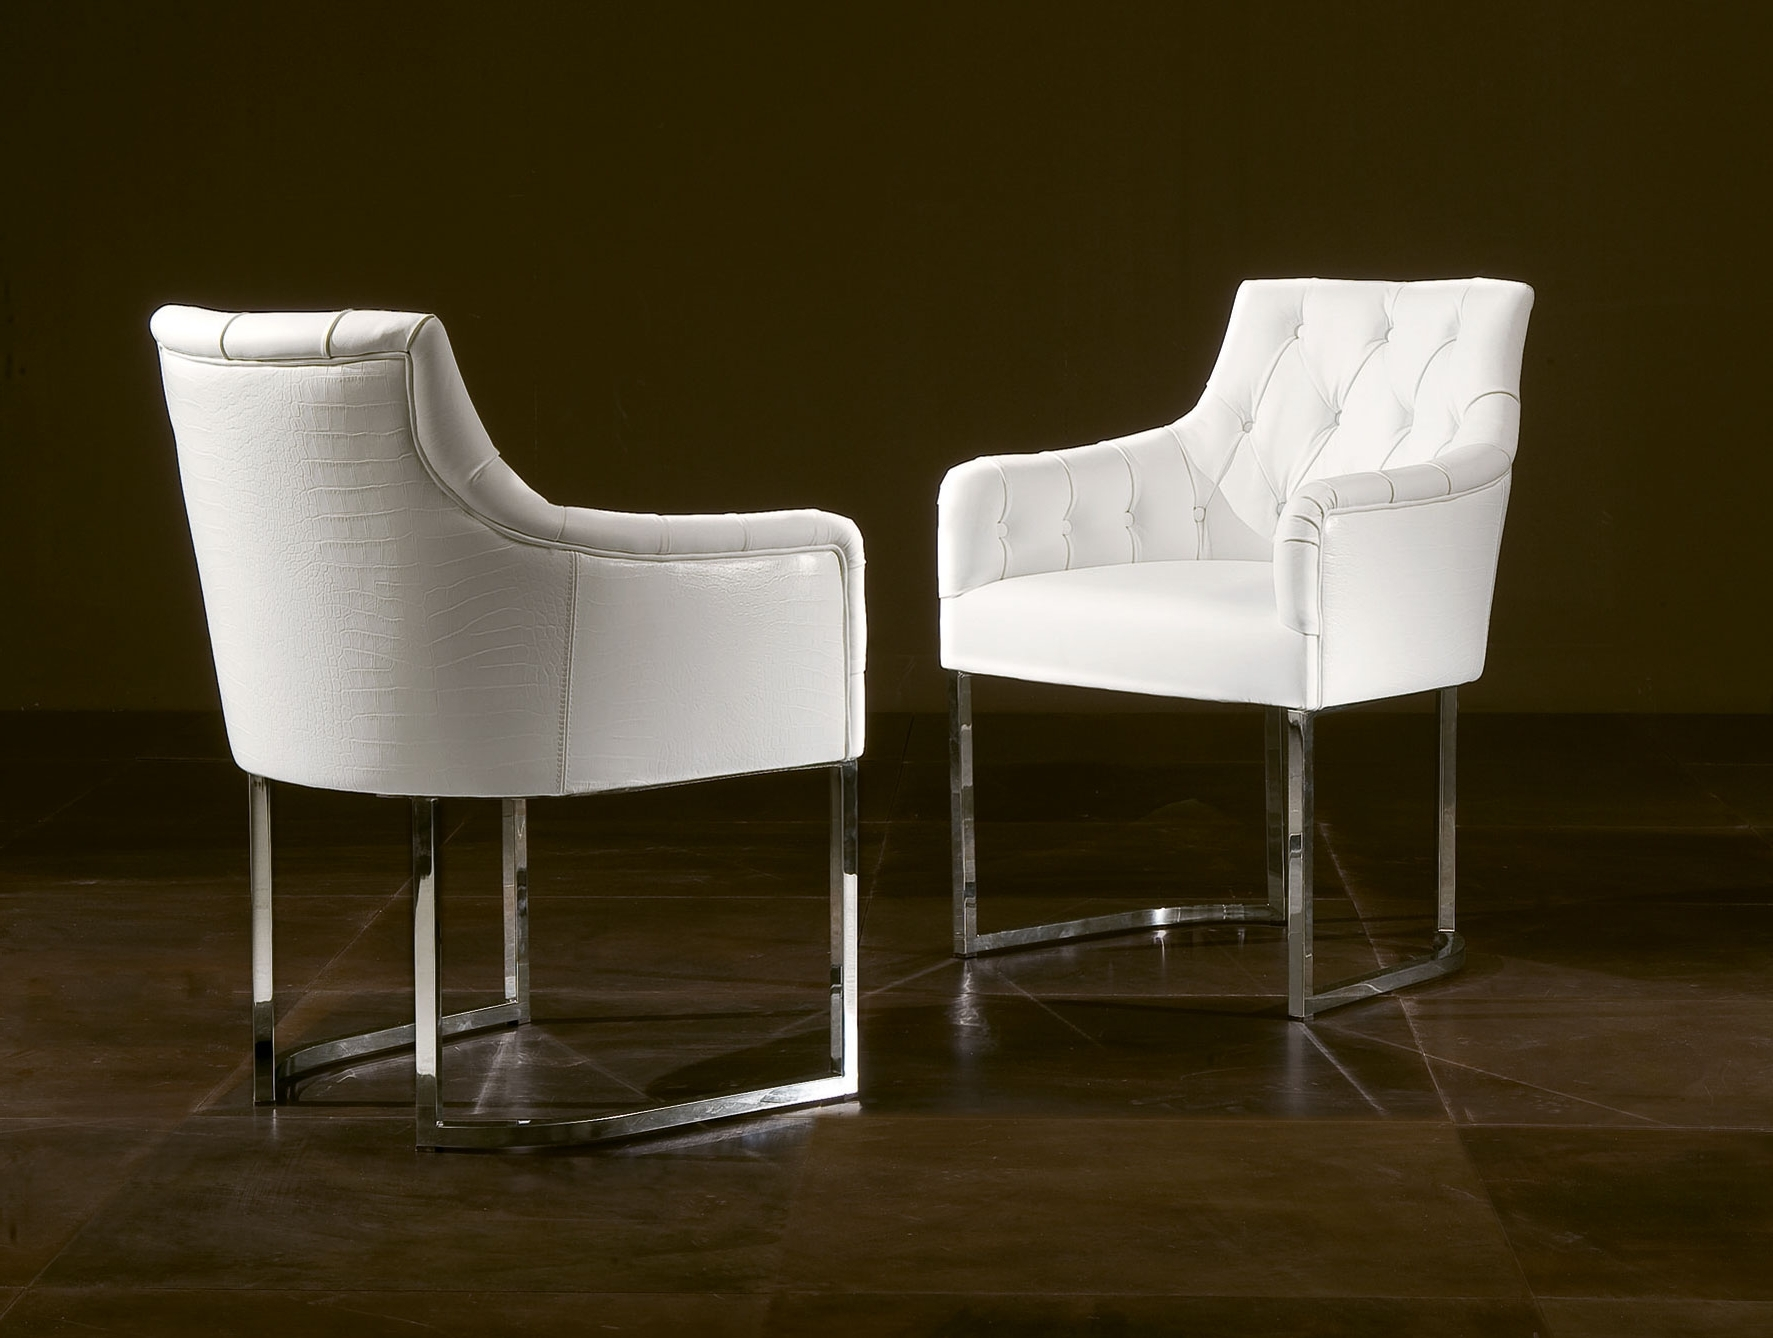 Well Liked Nella Vetrina Rugiano Guendalina 5032 Dining Armchair White Leather Intended For White Leather Dining Room Chairs (View 7 of 25)